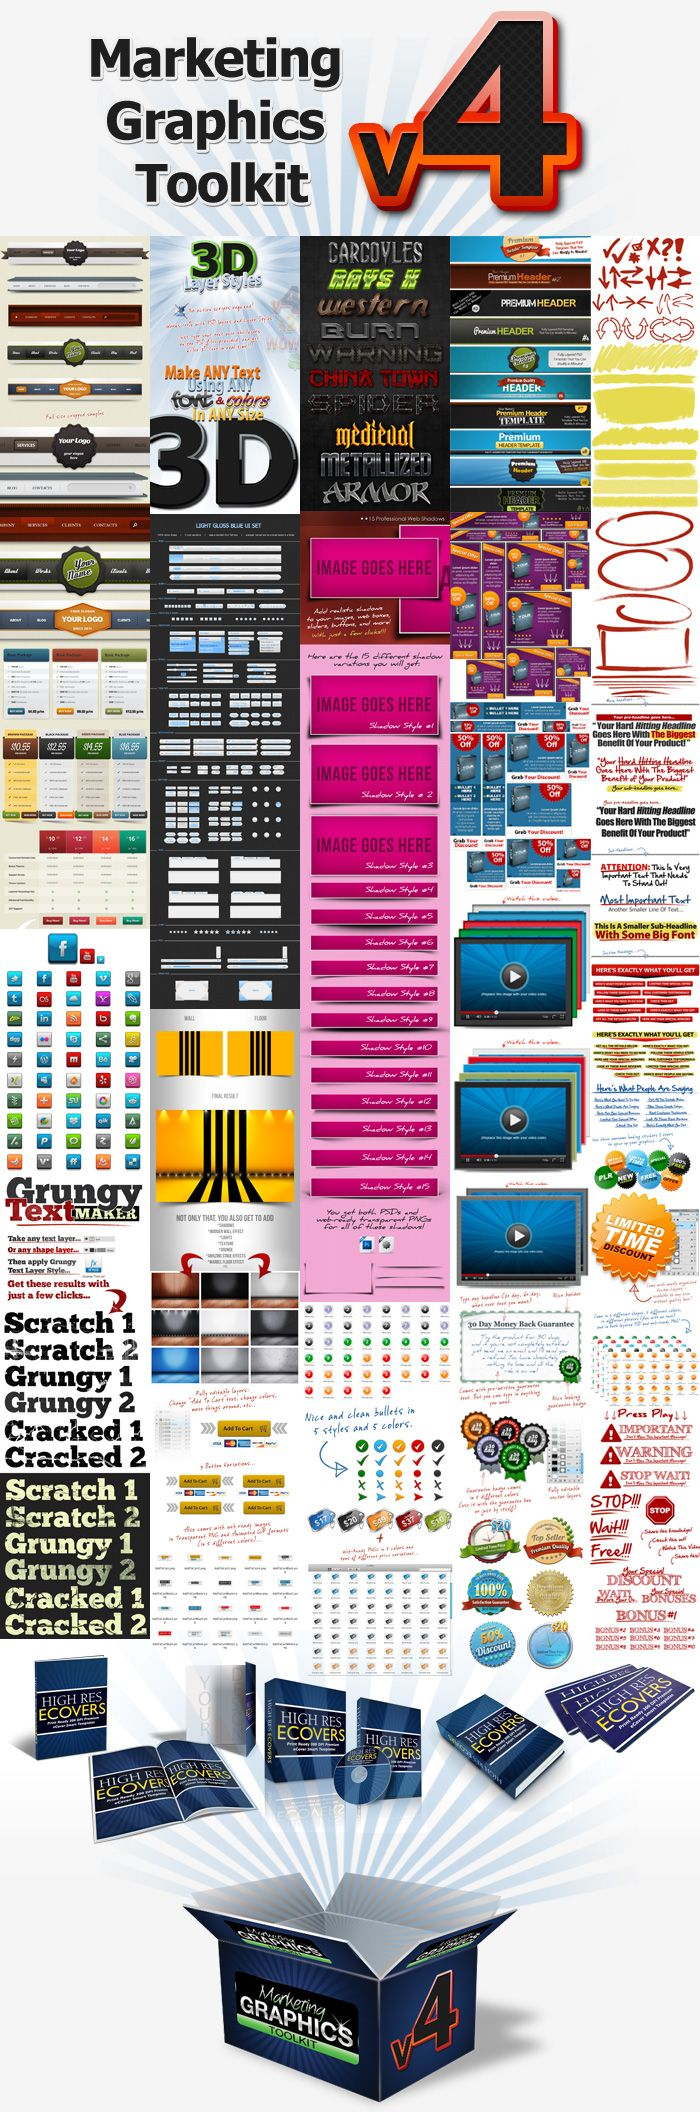 The Marketing Graphics Toolkit v4 Pro is a steal at a little over 13 bucks.